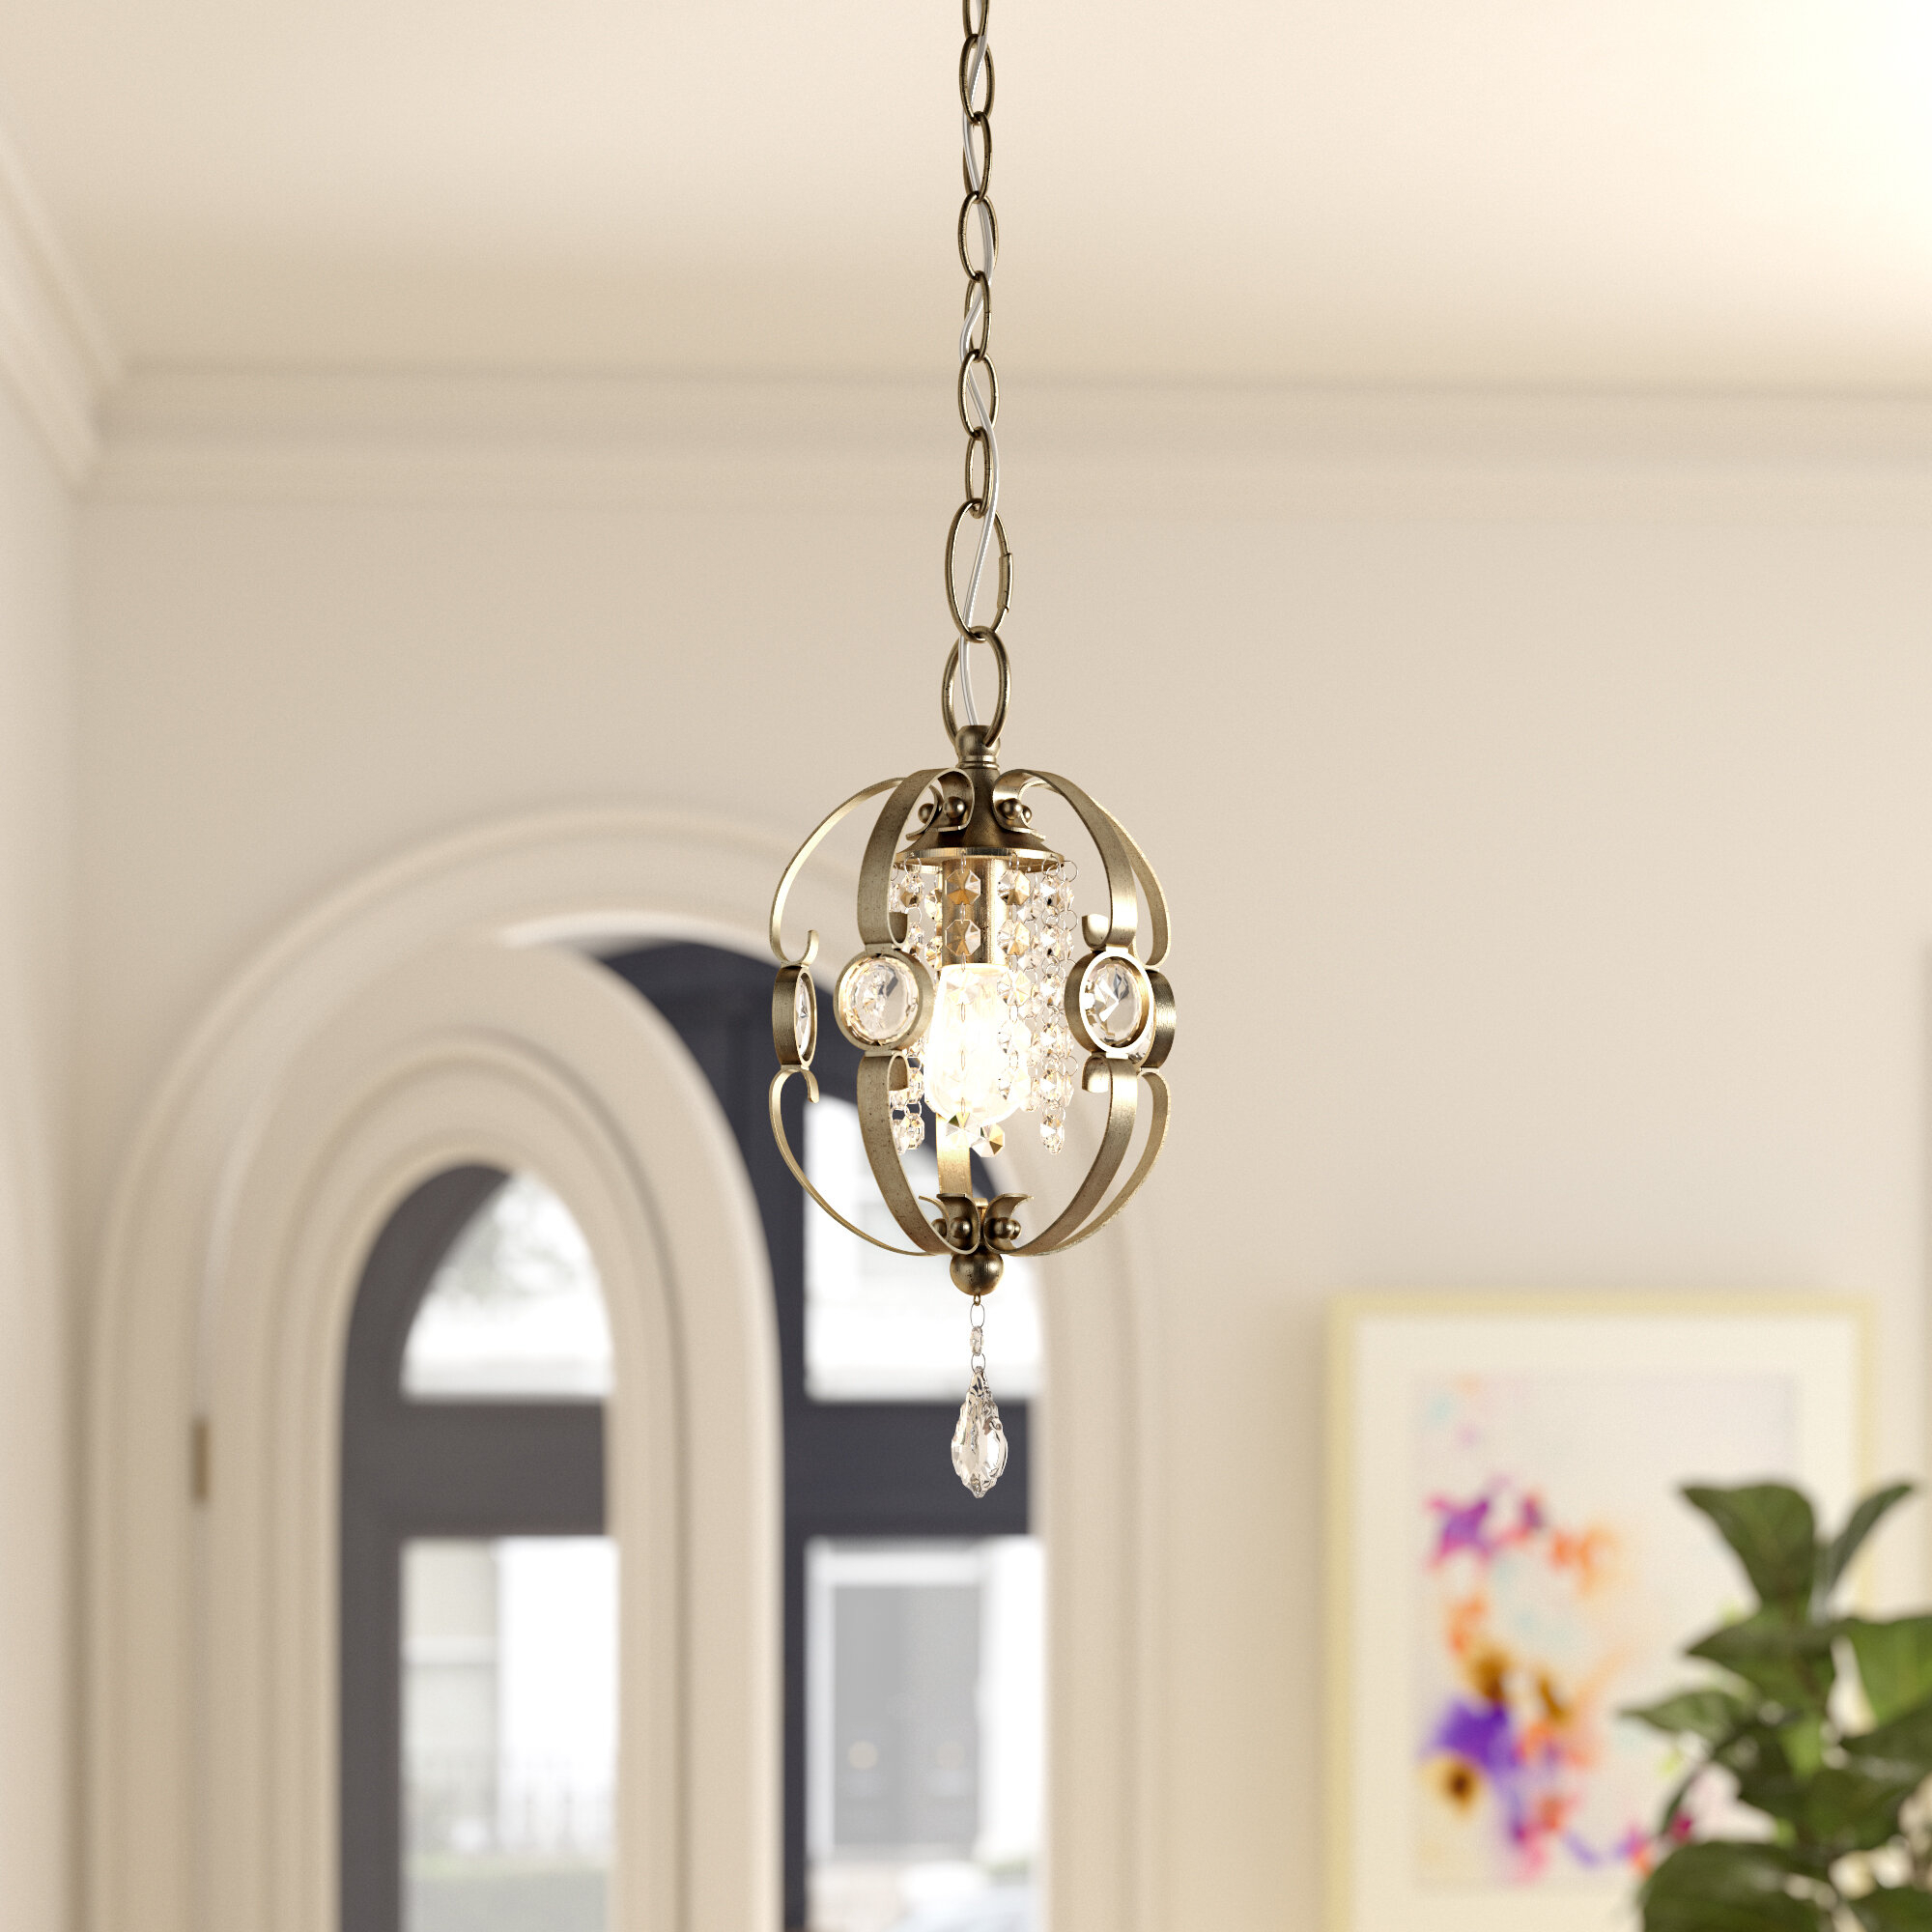 Hardouin 1-Light Single Geometric Pendant throughout Oriana 4-Light Single Geometric Chandeliers (Image 13 of 30)